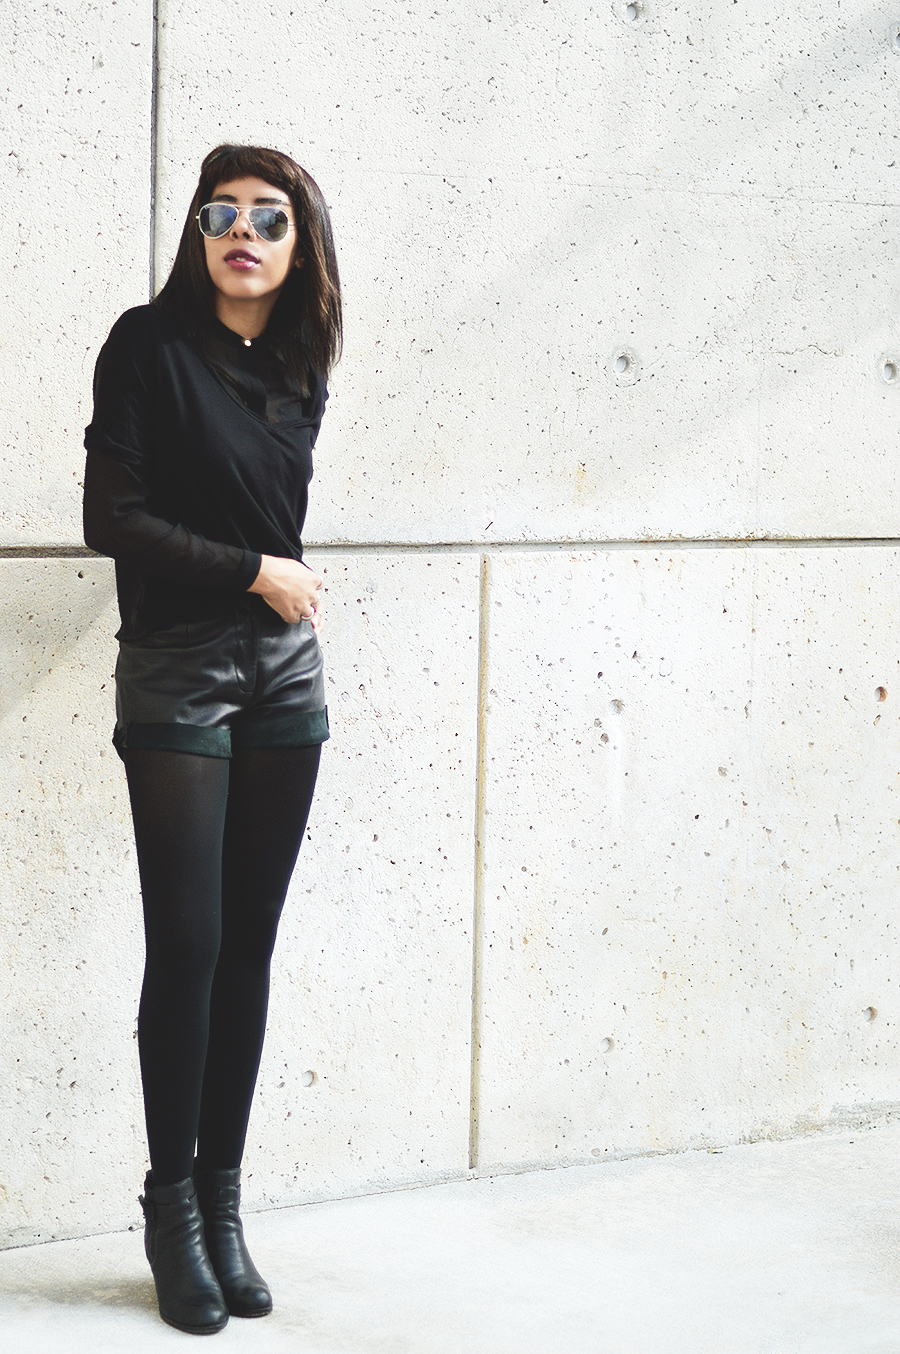 Minimalist Indie Fashion Blogger Anais Alexandre of Down to Stars in H&M and Dolce Vita Rodge Boots with Ray Ban Aviators